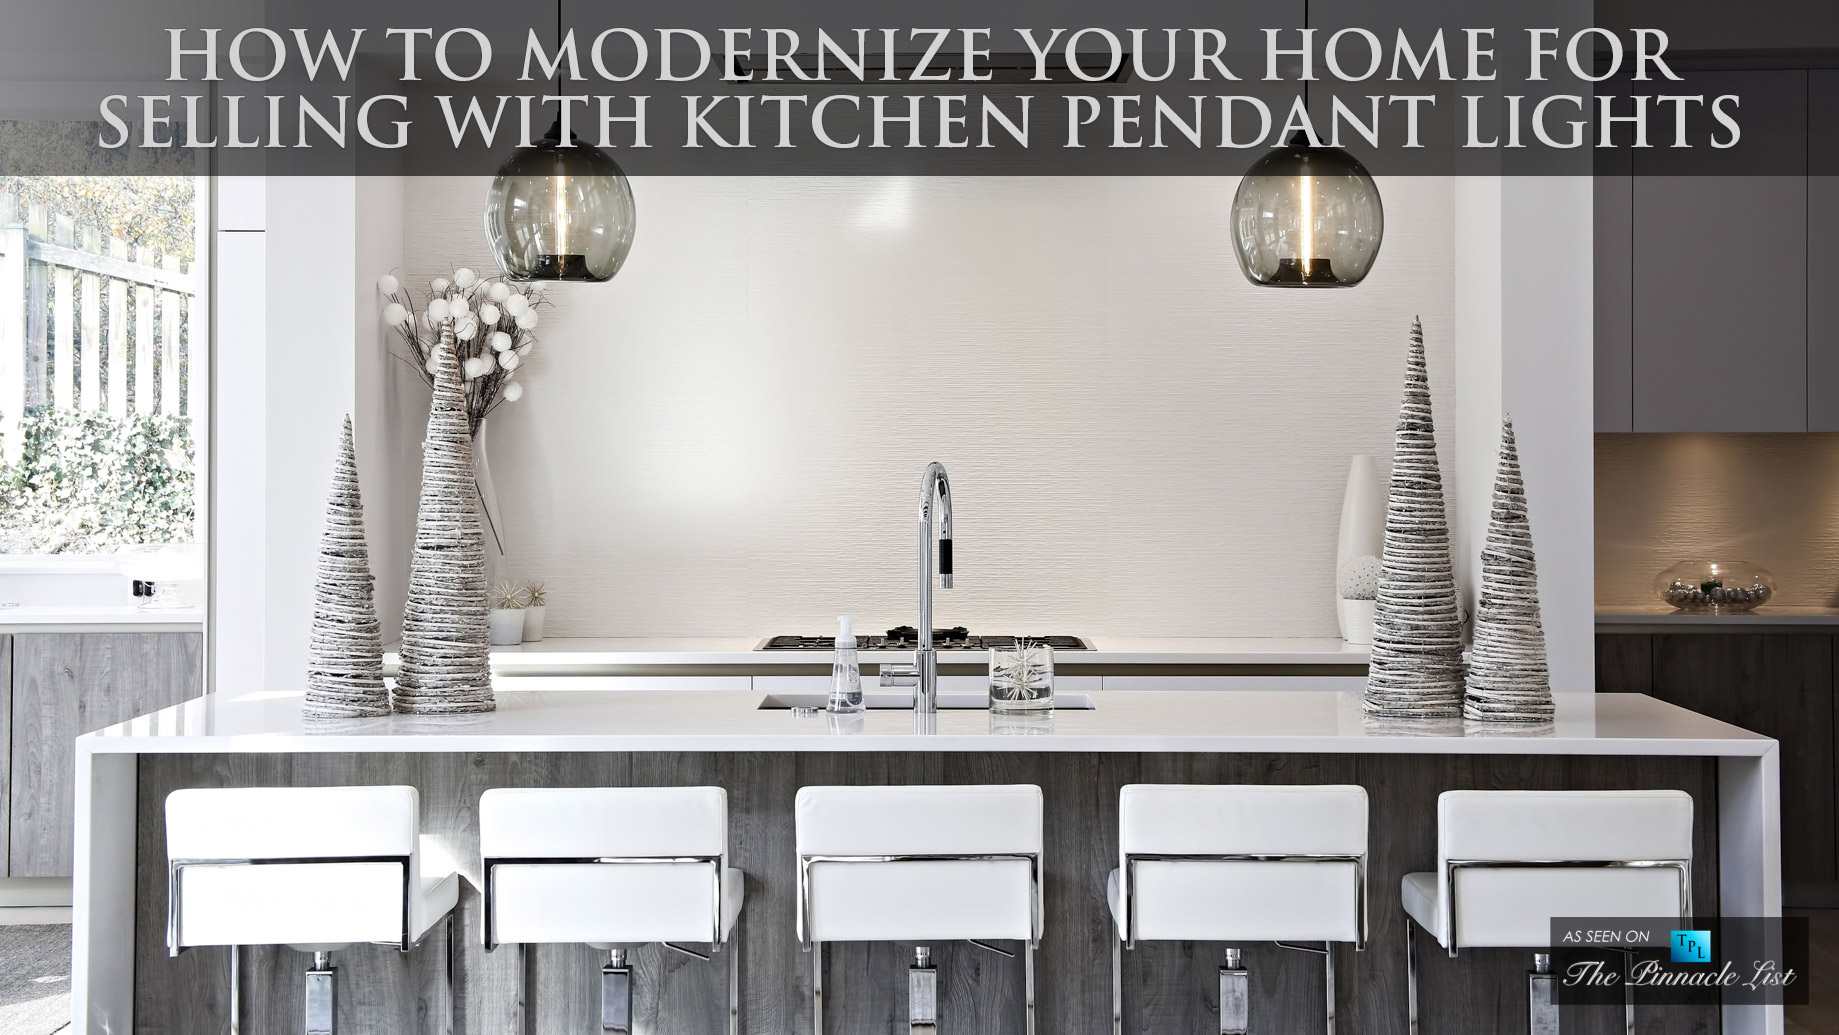 01b-How-To-Modernize-Your-Home-For-Selling-with-Kitchen-Pendant-Lights